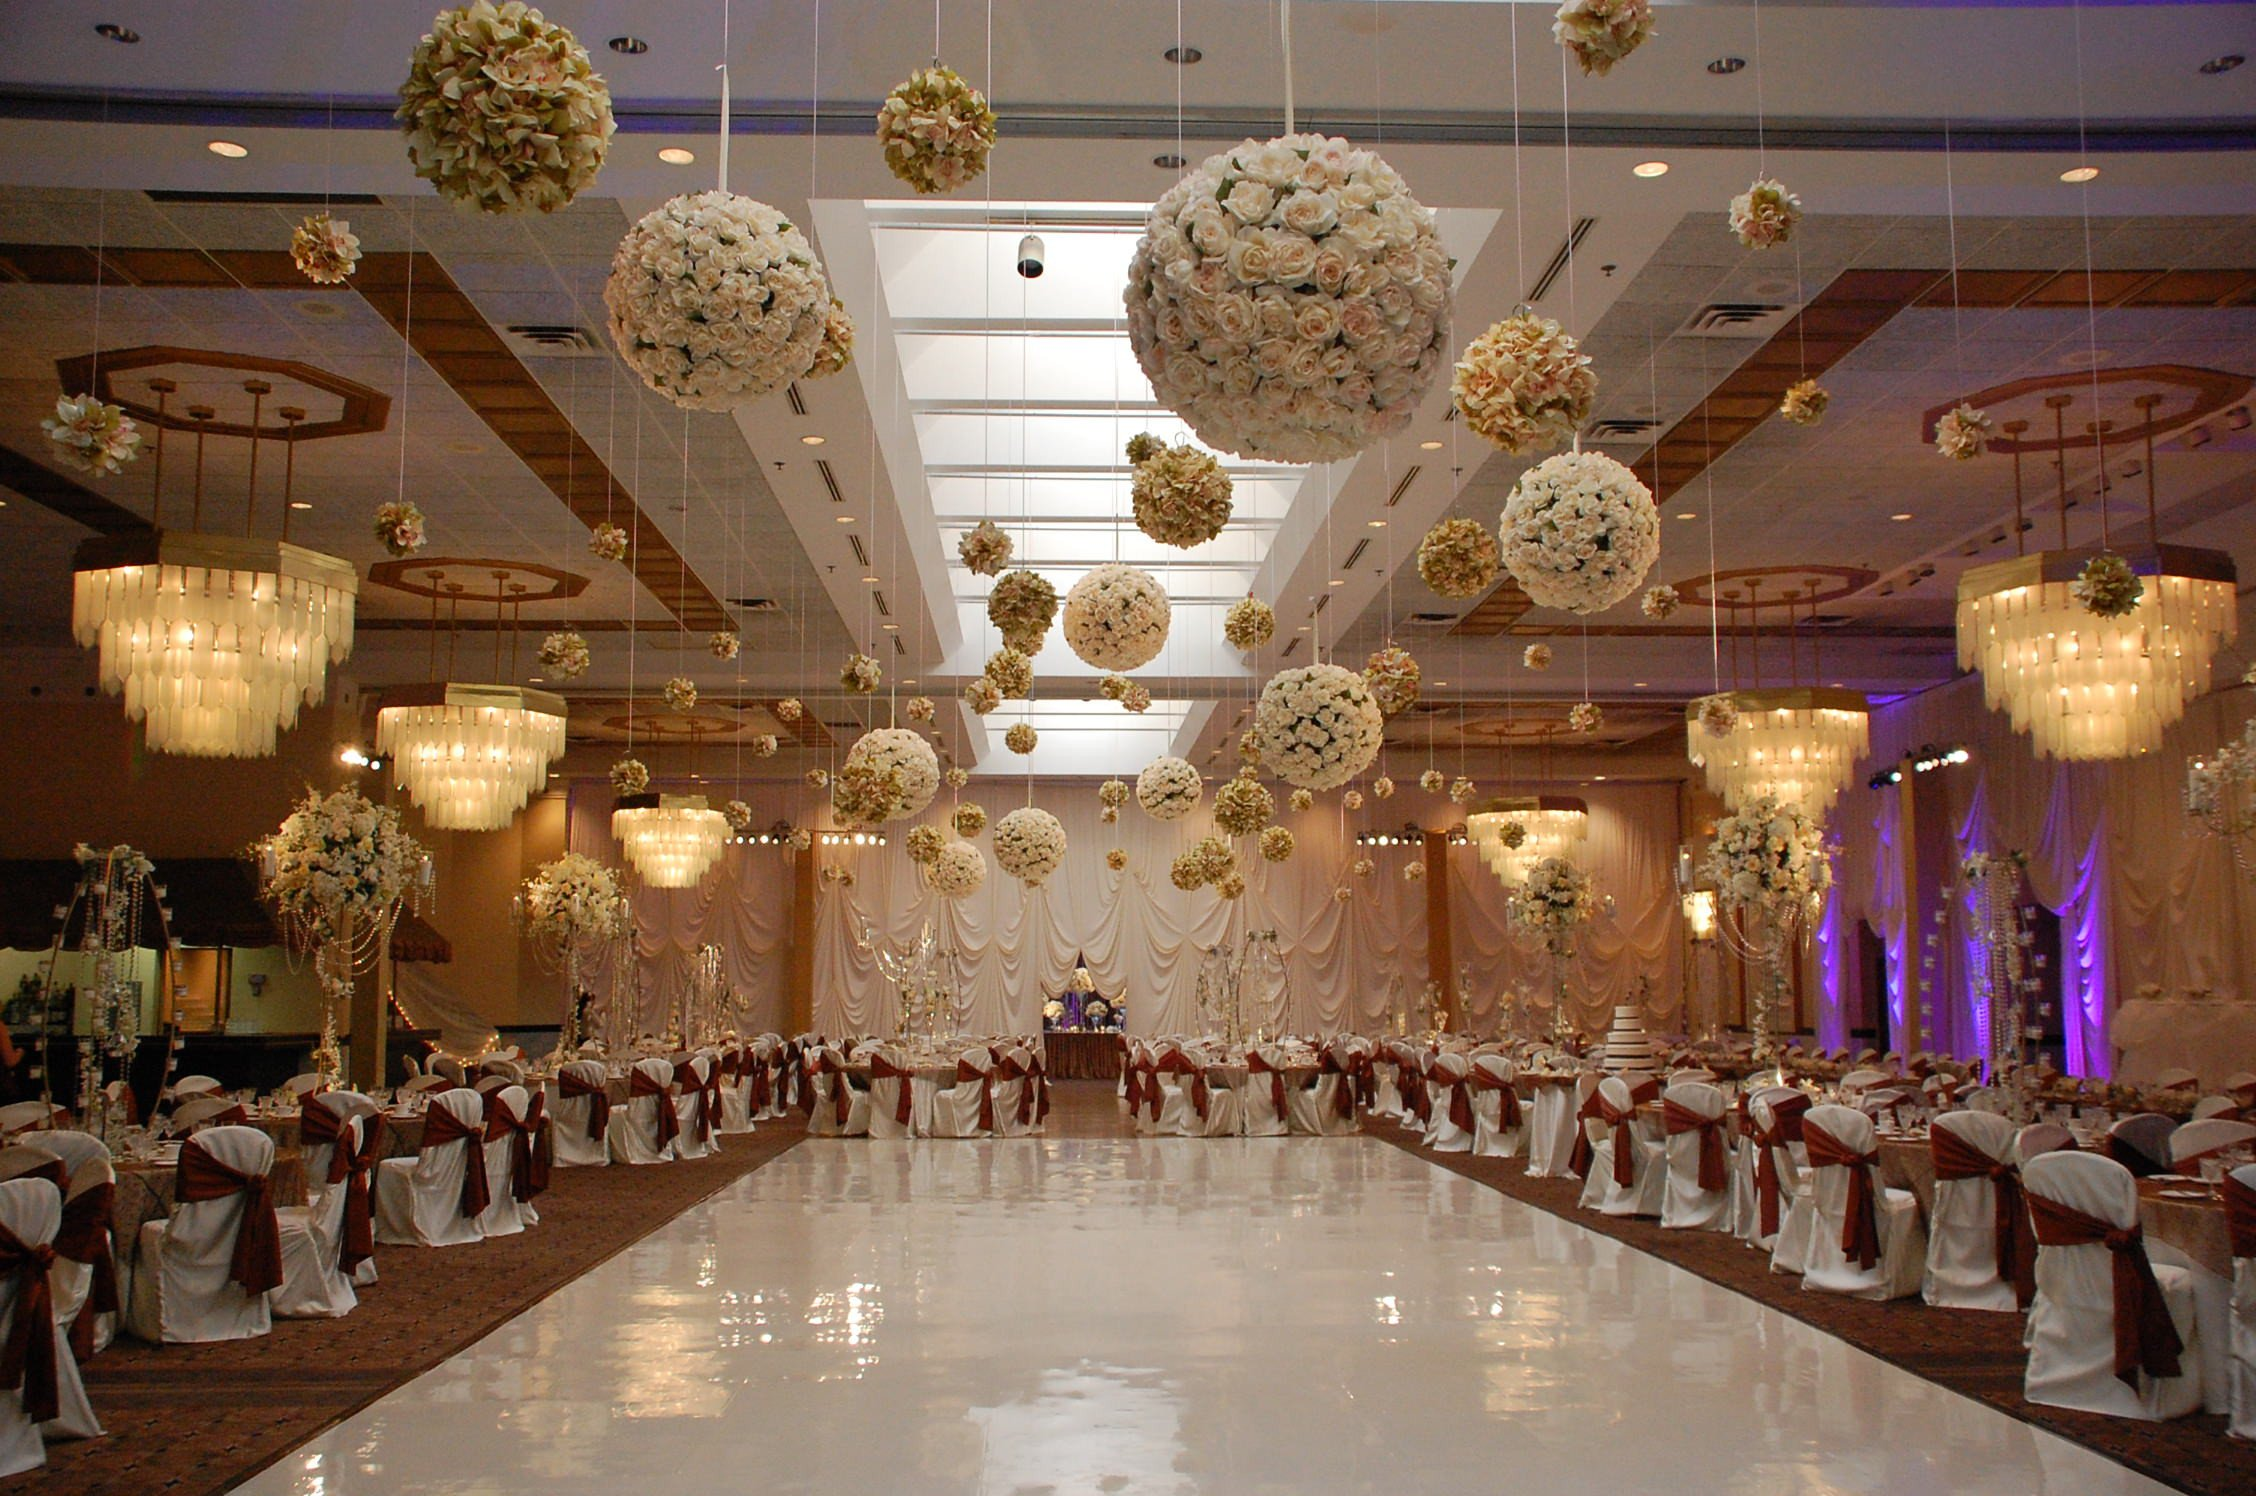 Decor Ideas for Wedding Reception Best Of 10 Bud Wedding Reception Decoration Ideas